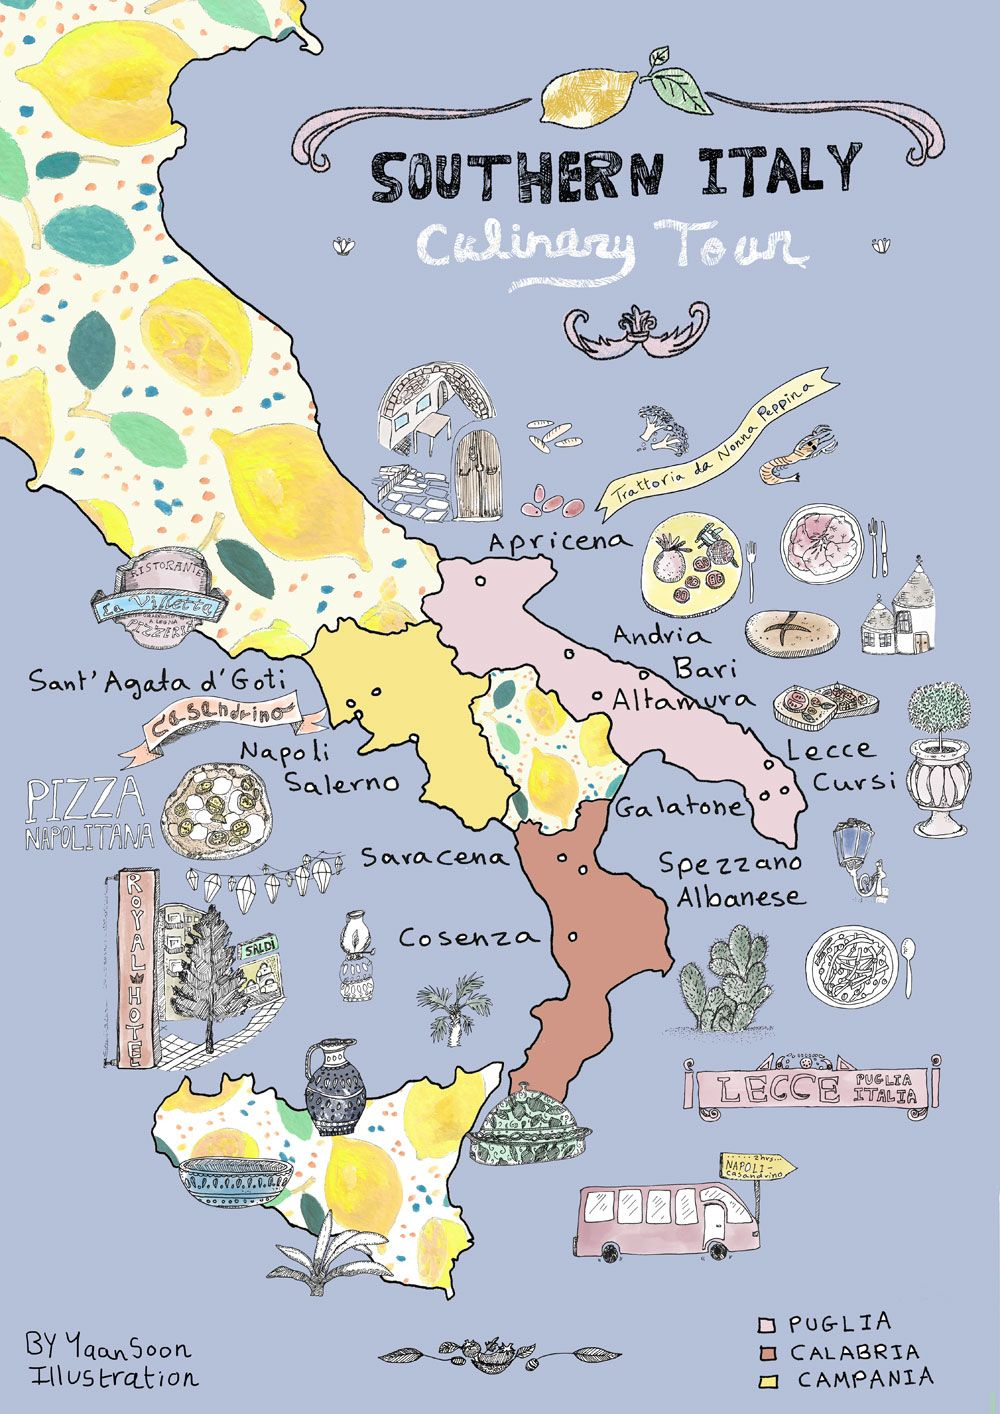 Southern Italy Map Italy Culinary Tour: Southern Italy Illustrated Map | ITALY